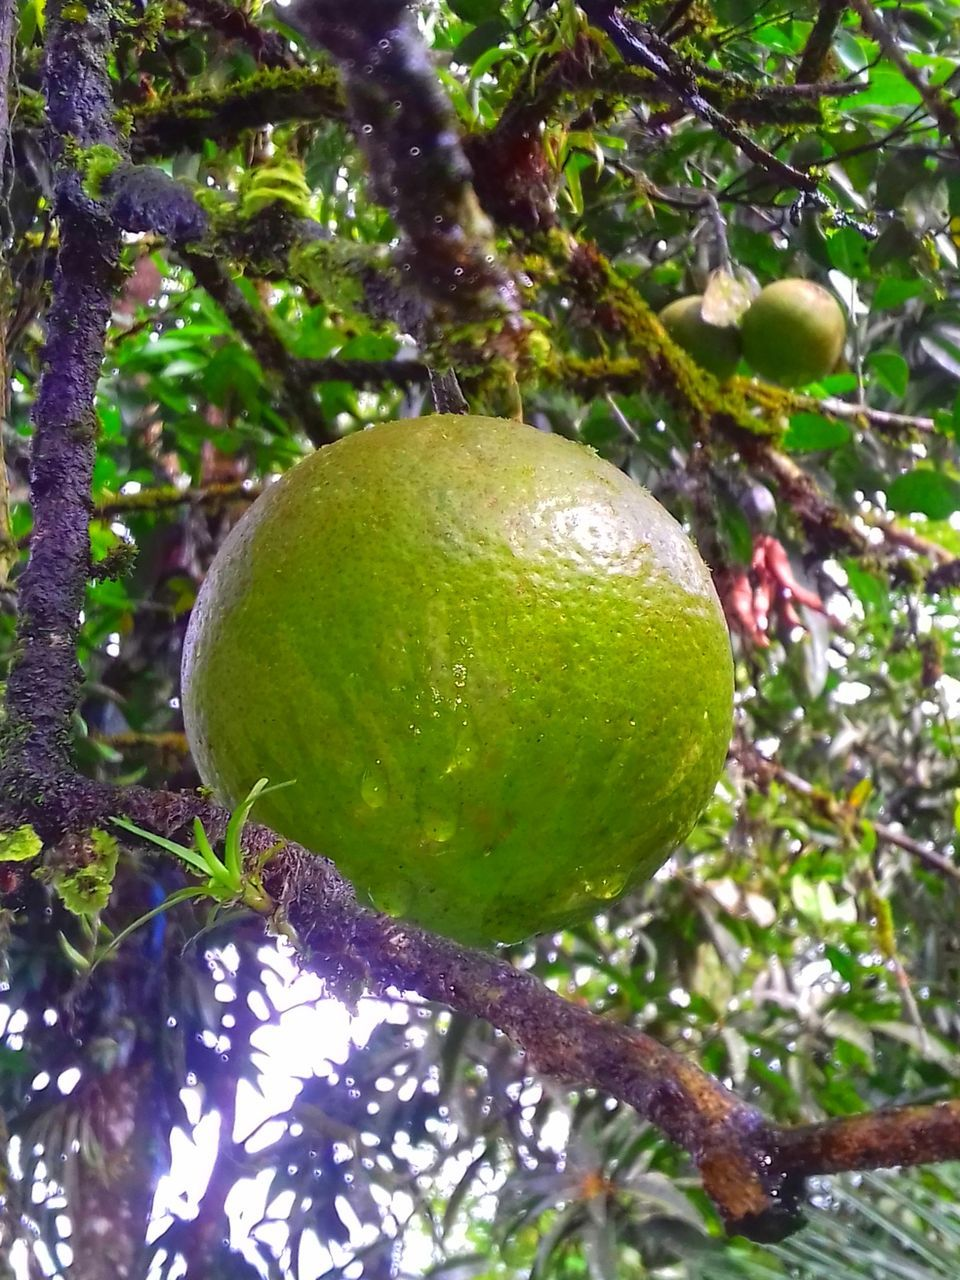 fruit, tree, growth, food and drink, branch, freshness, no people, green color, lemon tree, citrus fruit, day, food, nature, close-up, hanging, outdoors, unripe, ripe, focus on foreground, low angle view, healthy eating, leaf, beauty in nature